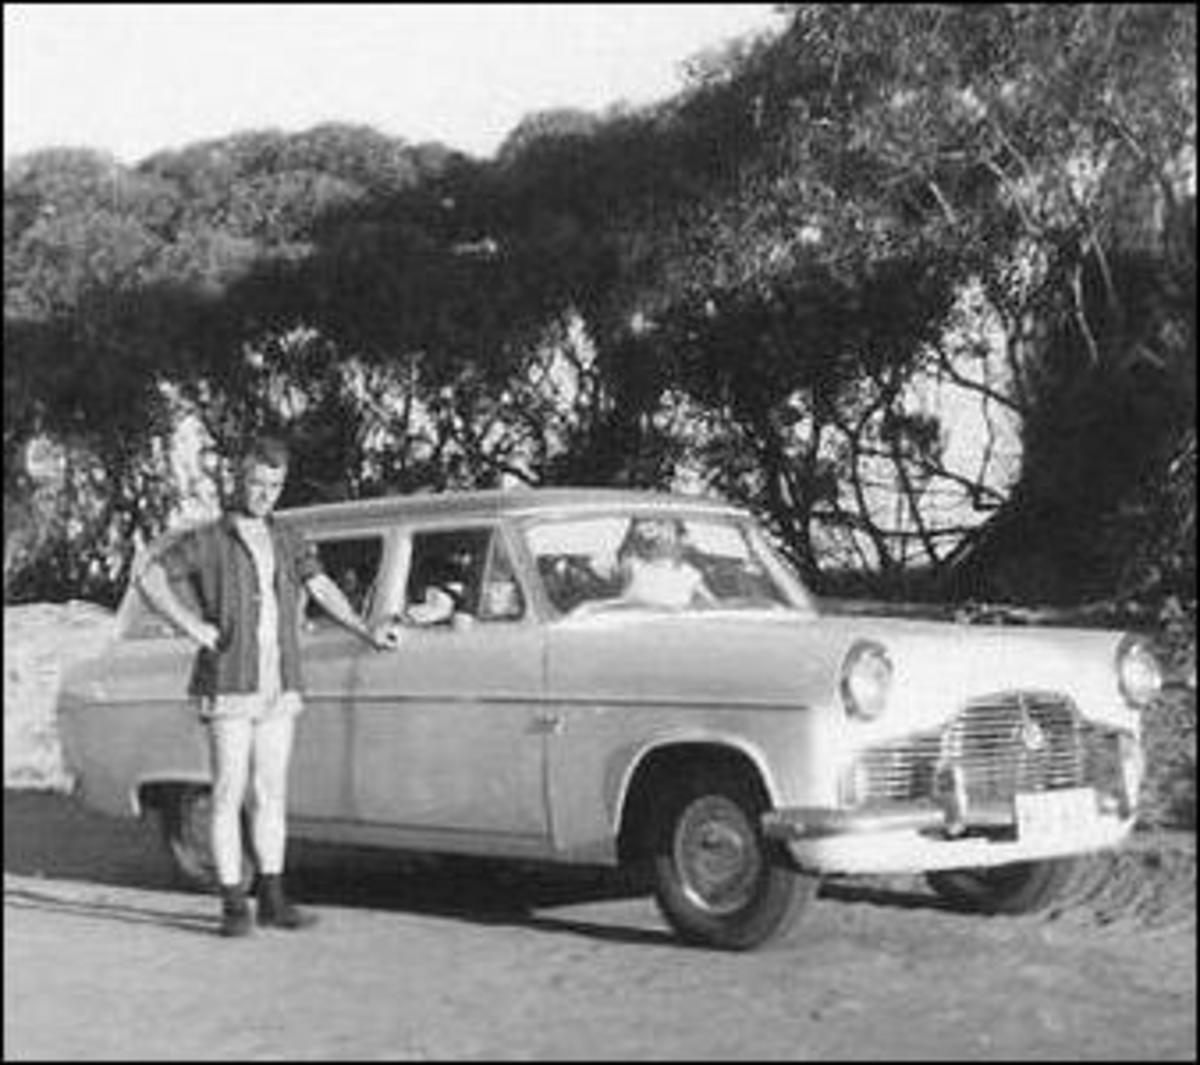 Peter driving in the outback in Australia. 1967